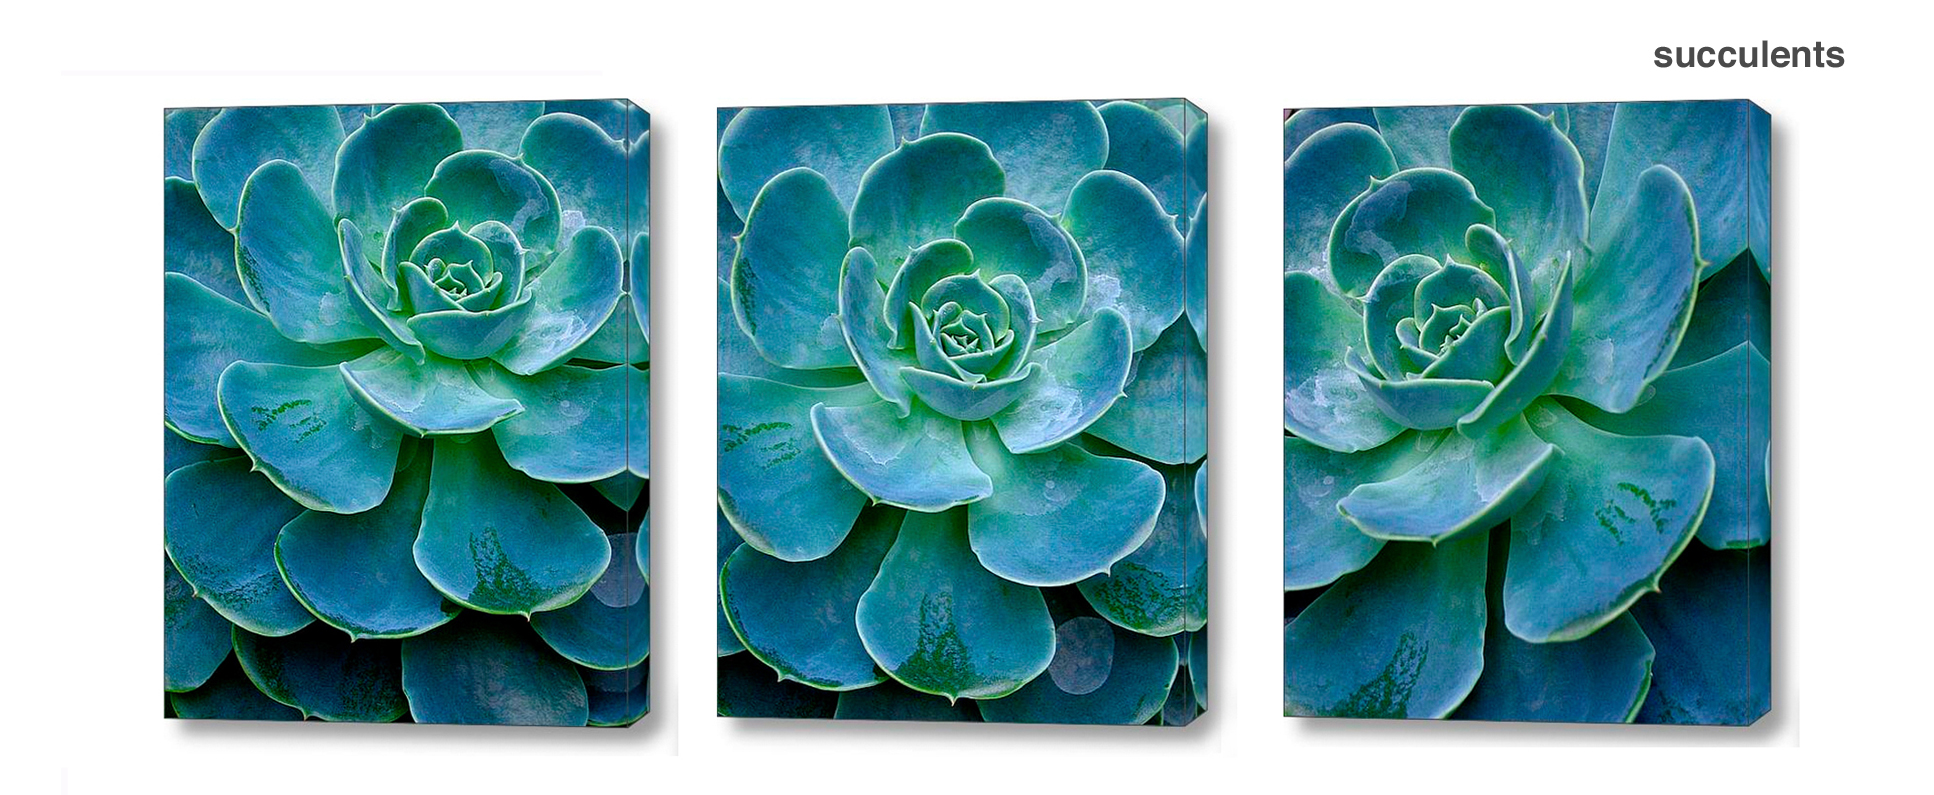 succulent series - Floral Series Wall Decor Macro Photography Matted & Giclée Canvas Prints